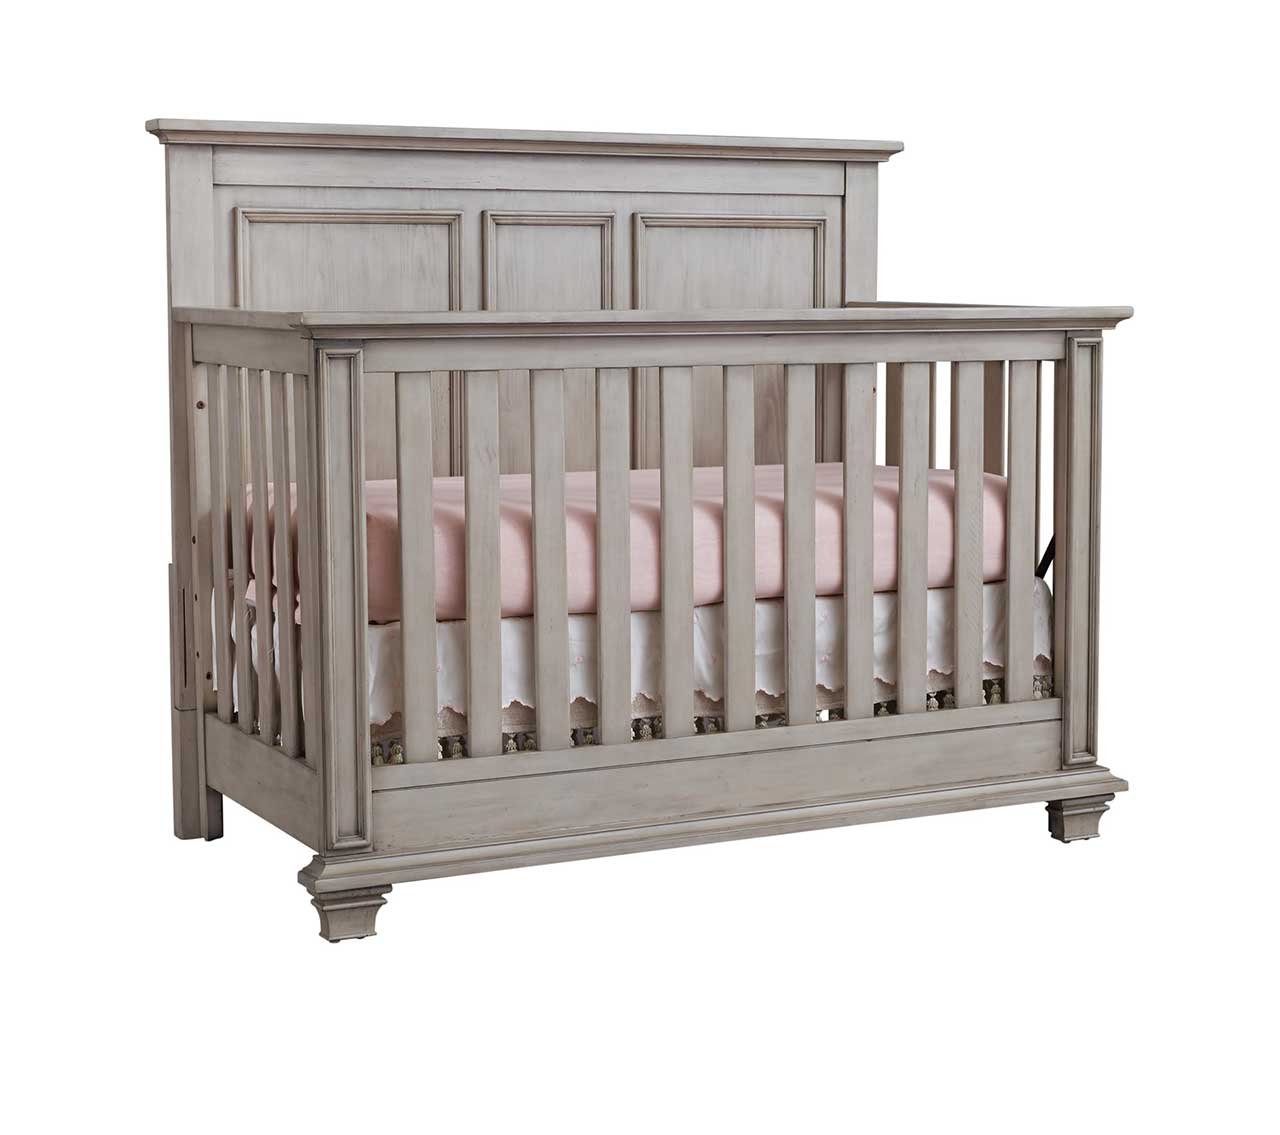 Crib Outlet | Baby, Nursery, Kids & Teen